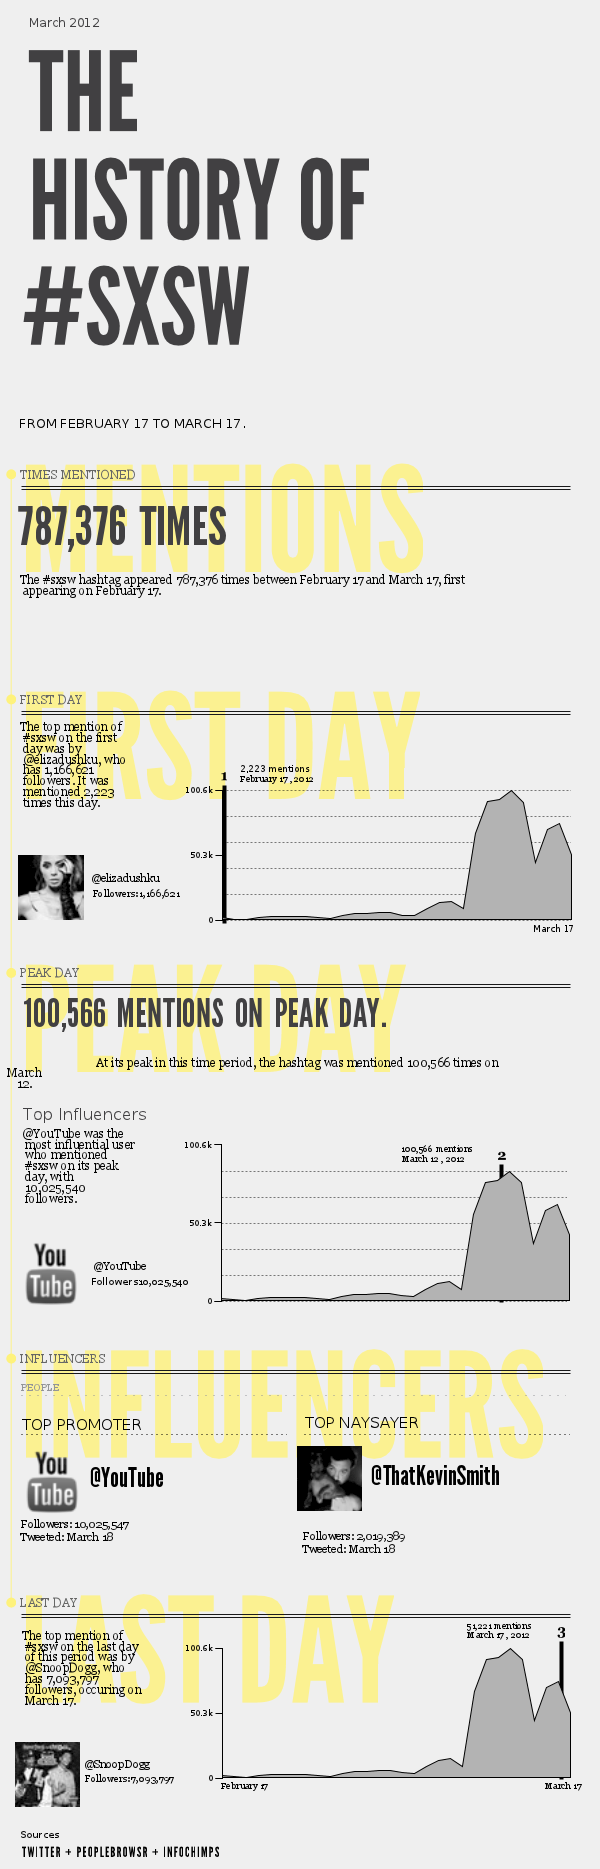 infographic11221 20613 1pceni5 SXSW bangs out the #hashtags